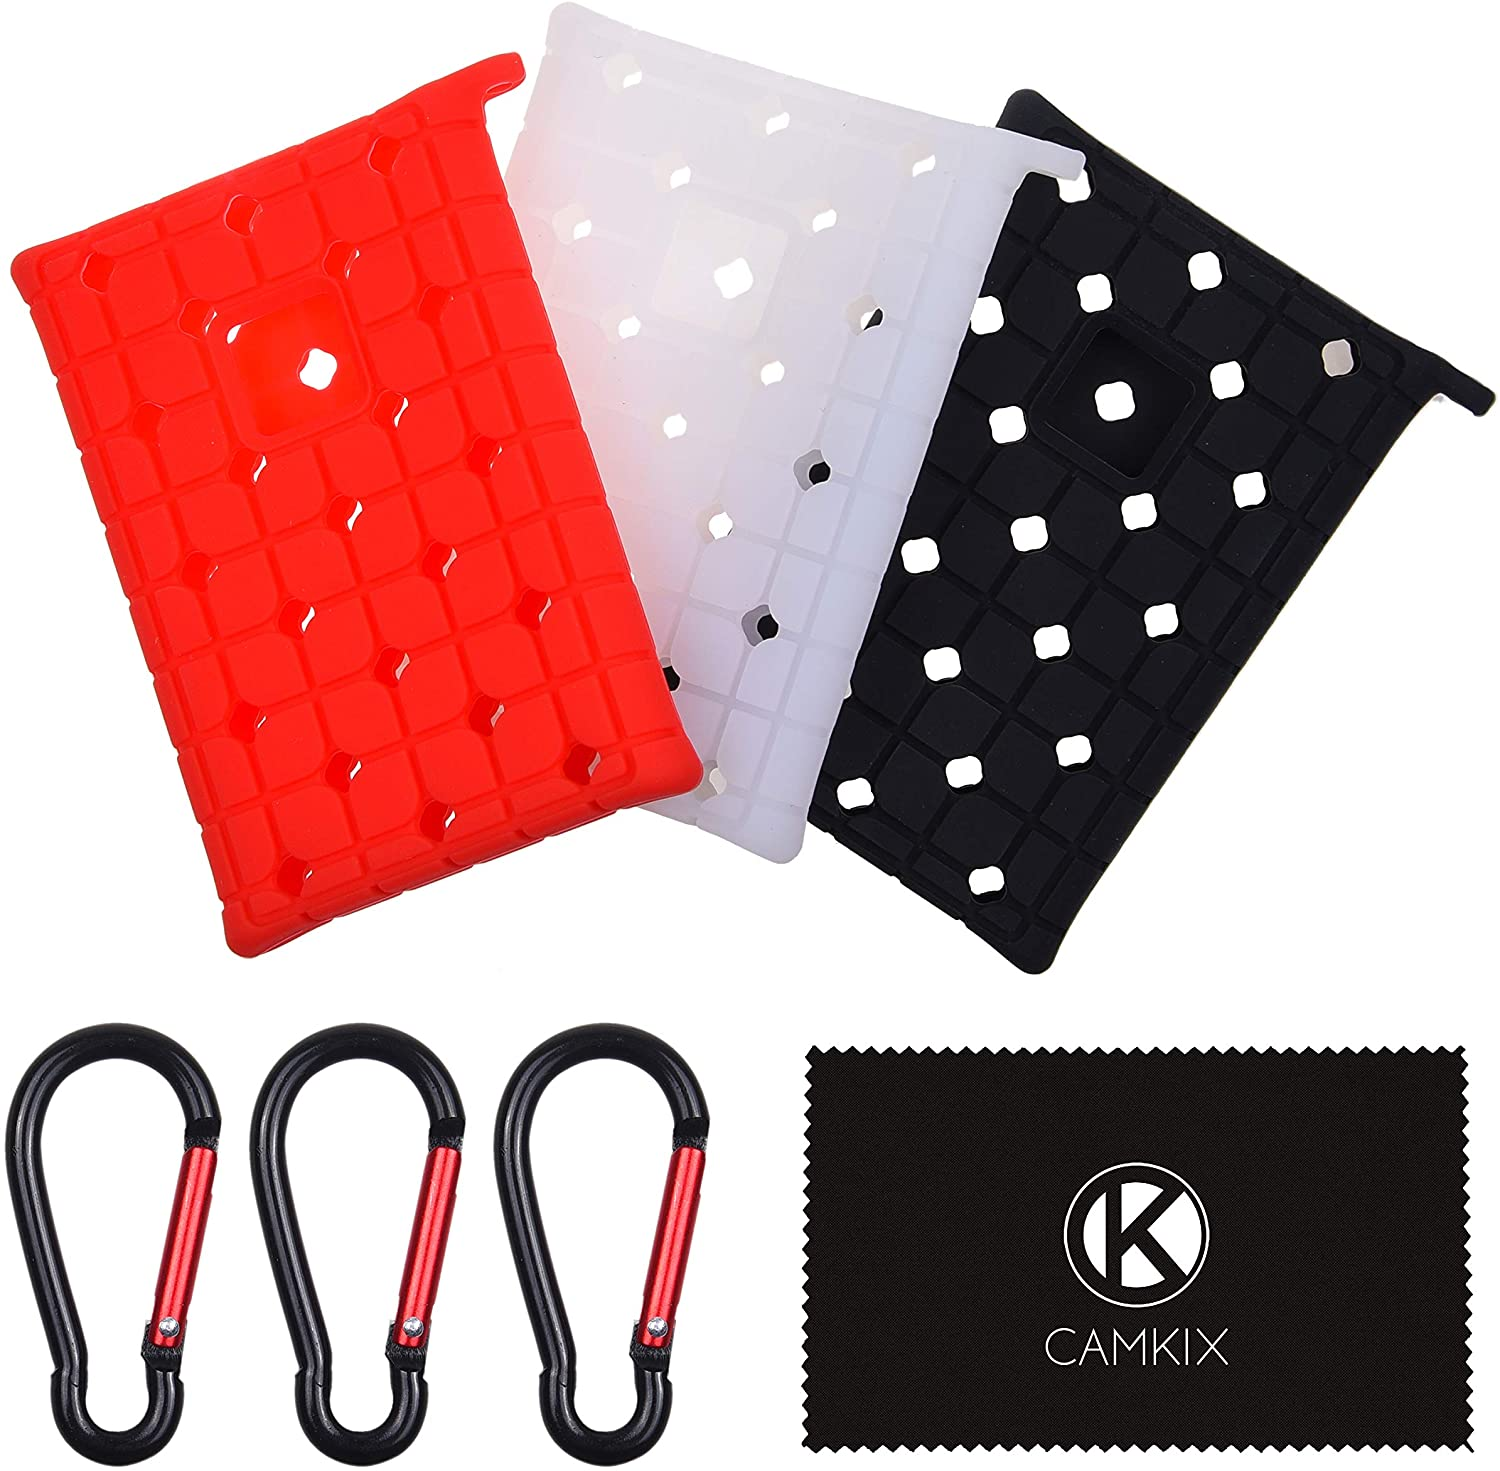 CamKix Silicone Sleeve Compatible with Samsung T7 - Set of 3 - Scratch and Shock Proof Case - Red, Black and White - Non-Slip Rubber Skin for Your External Drive - Ultra Thin Lightweight Travel Covers